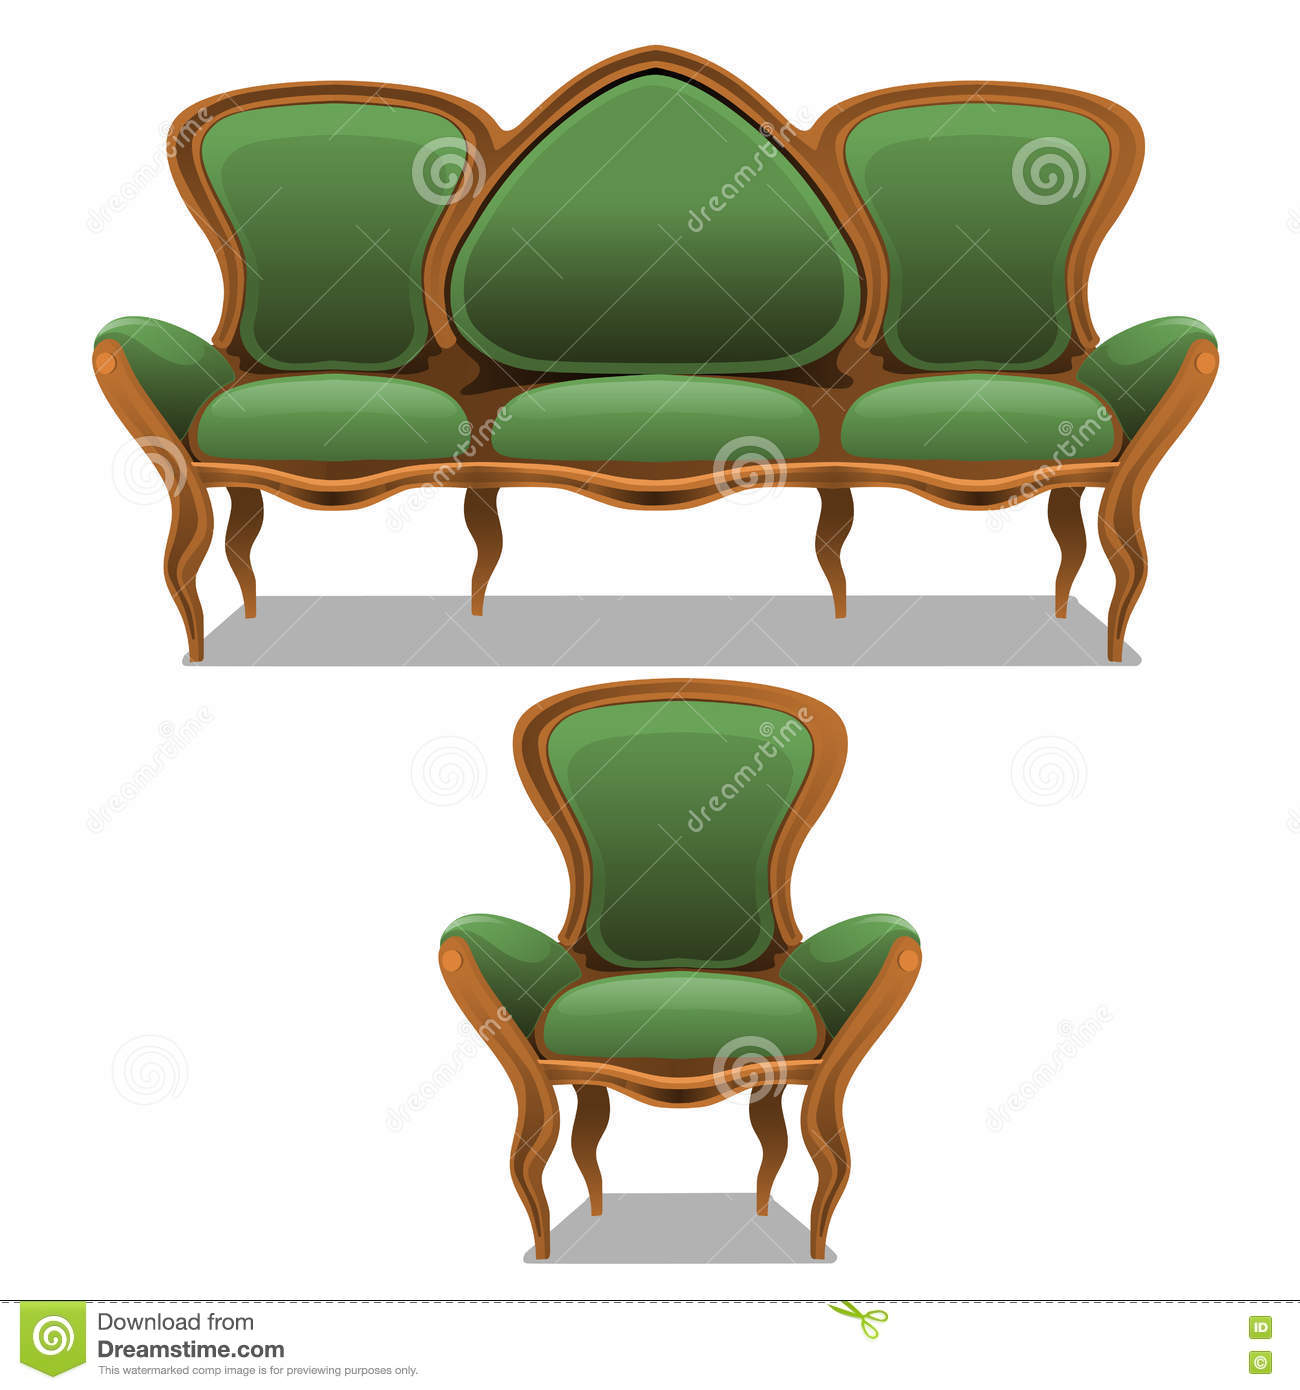 Vintage green furniture armchair and sofa stock vector for Free greene and greene furniture plans